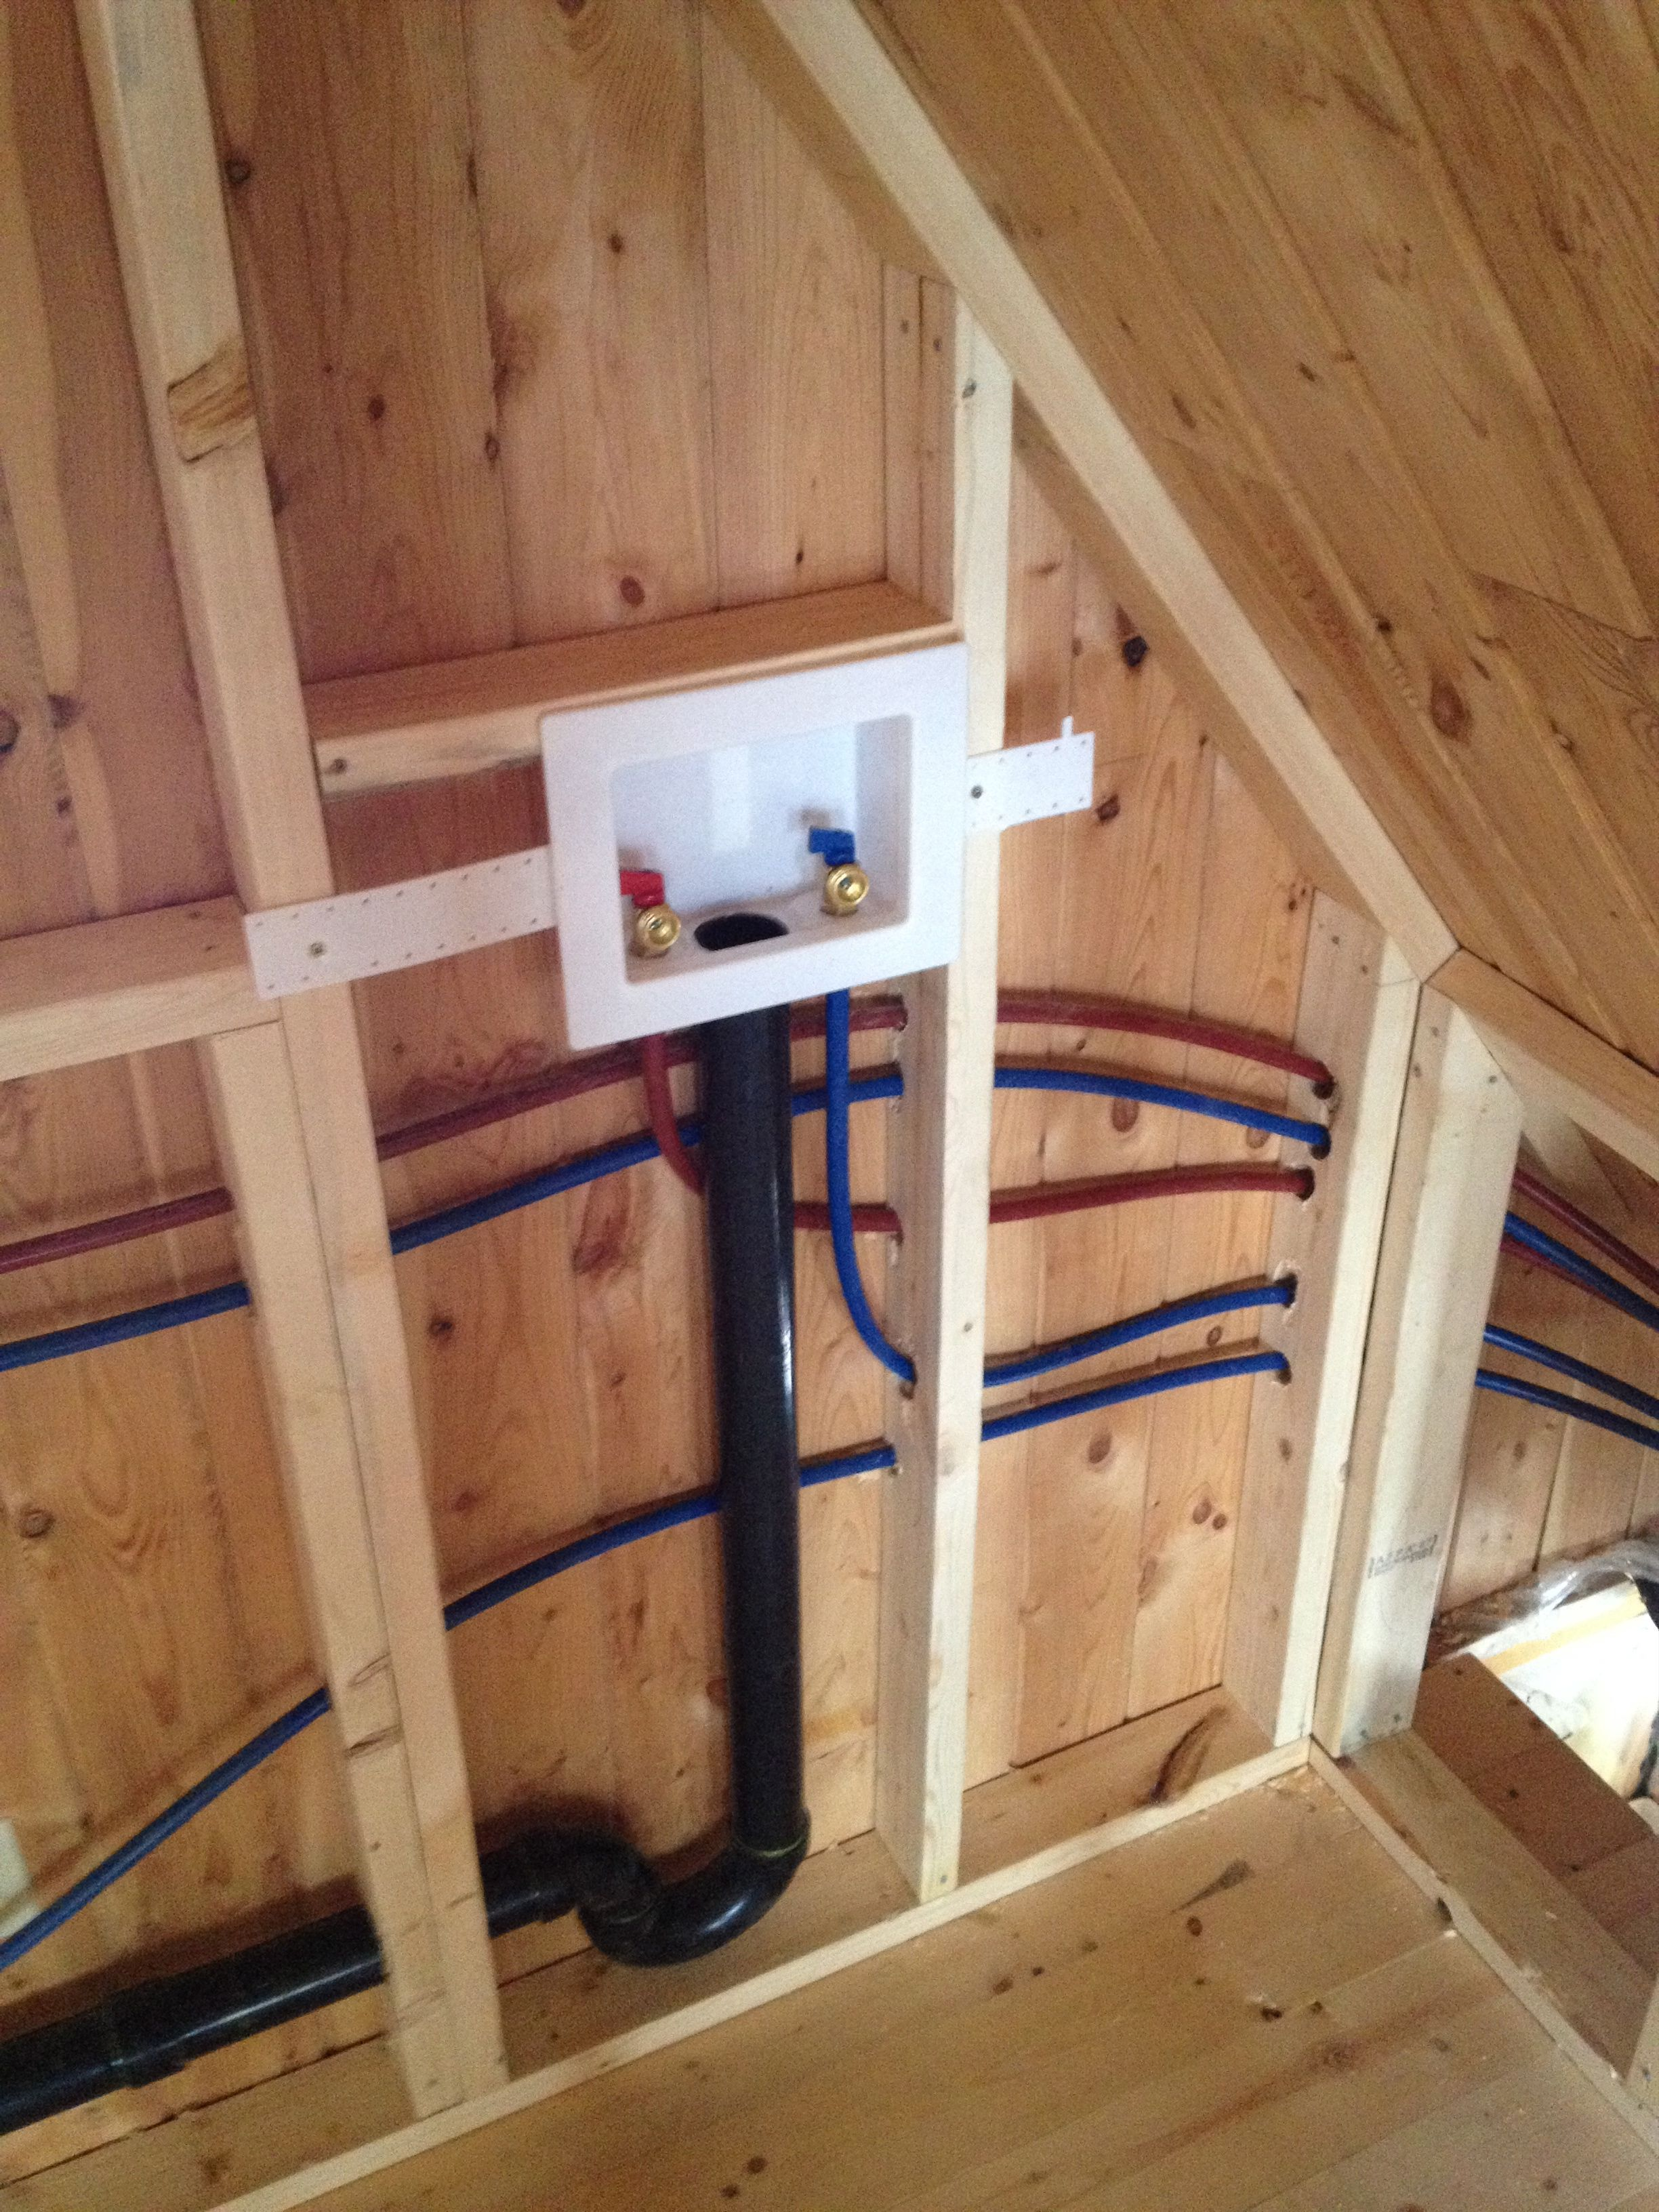 attic plumbing diagram baldor motor wiring diagrams 1 phase rough in completed throughout the cabin